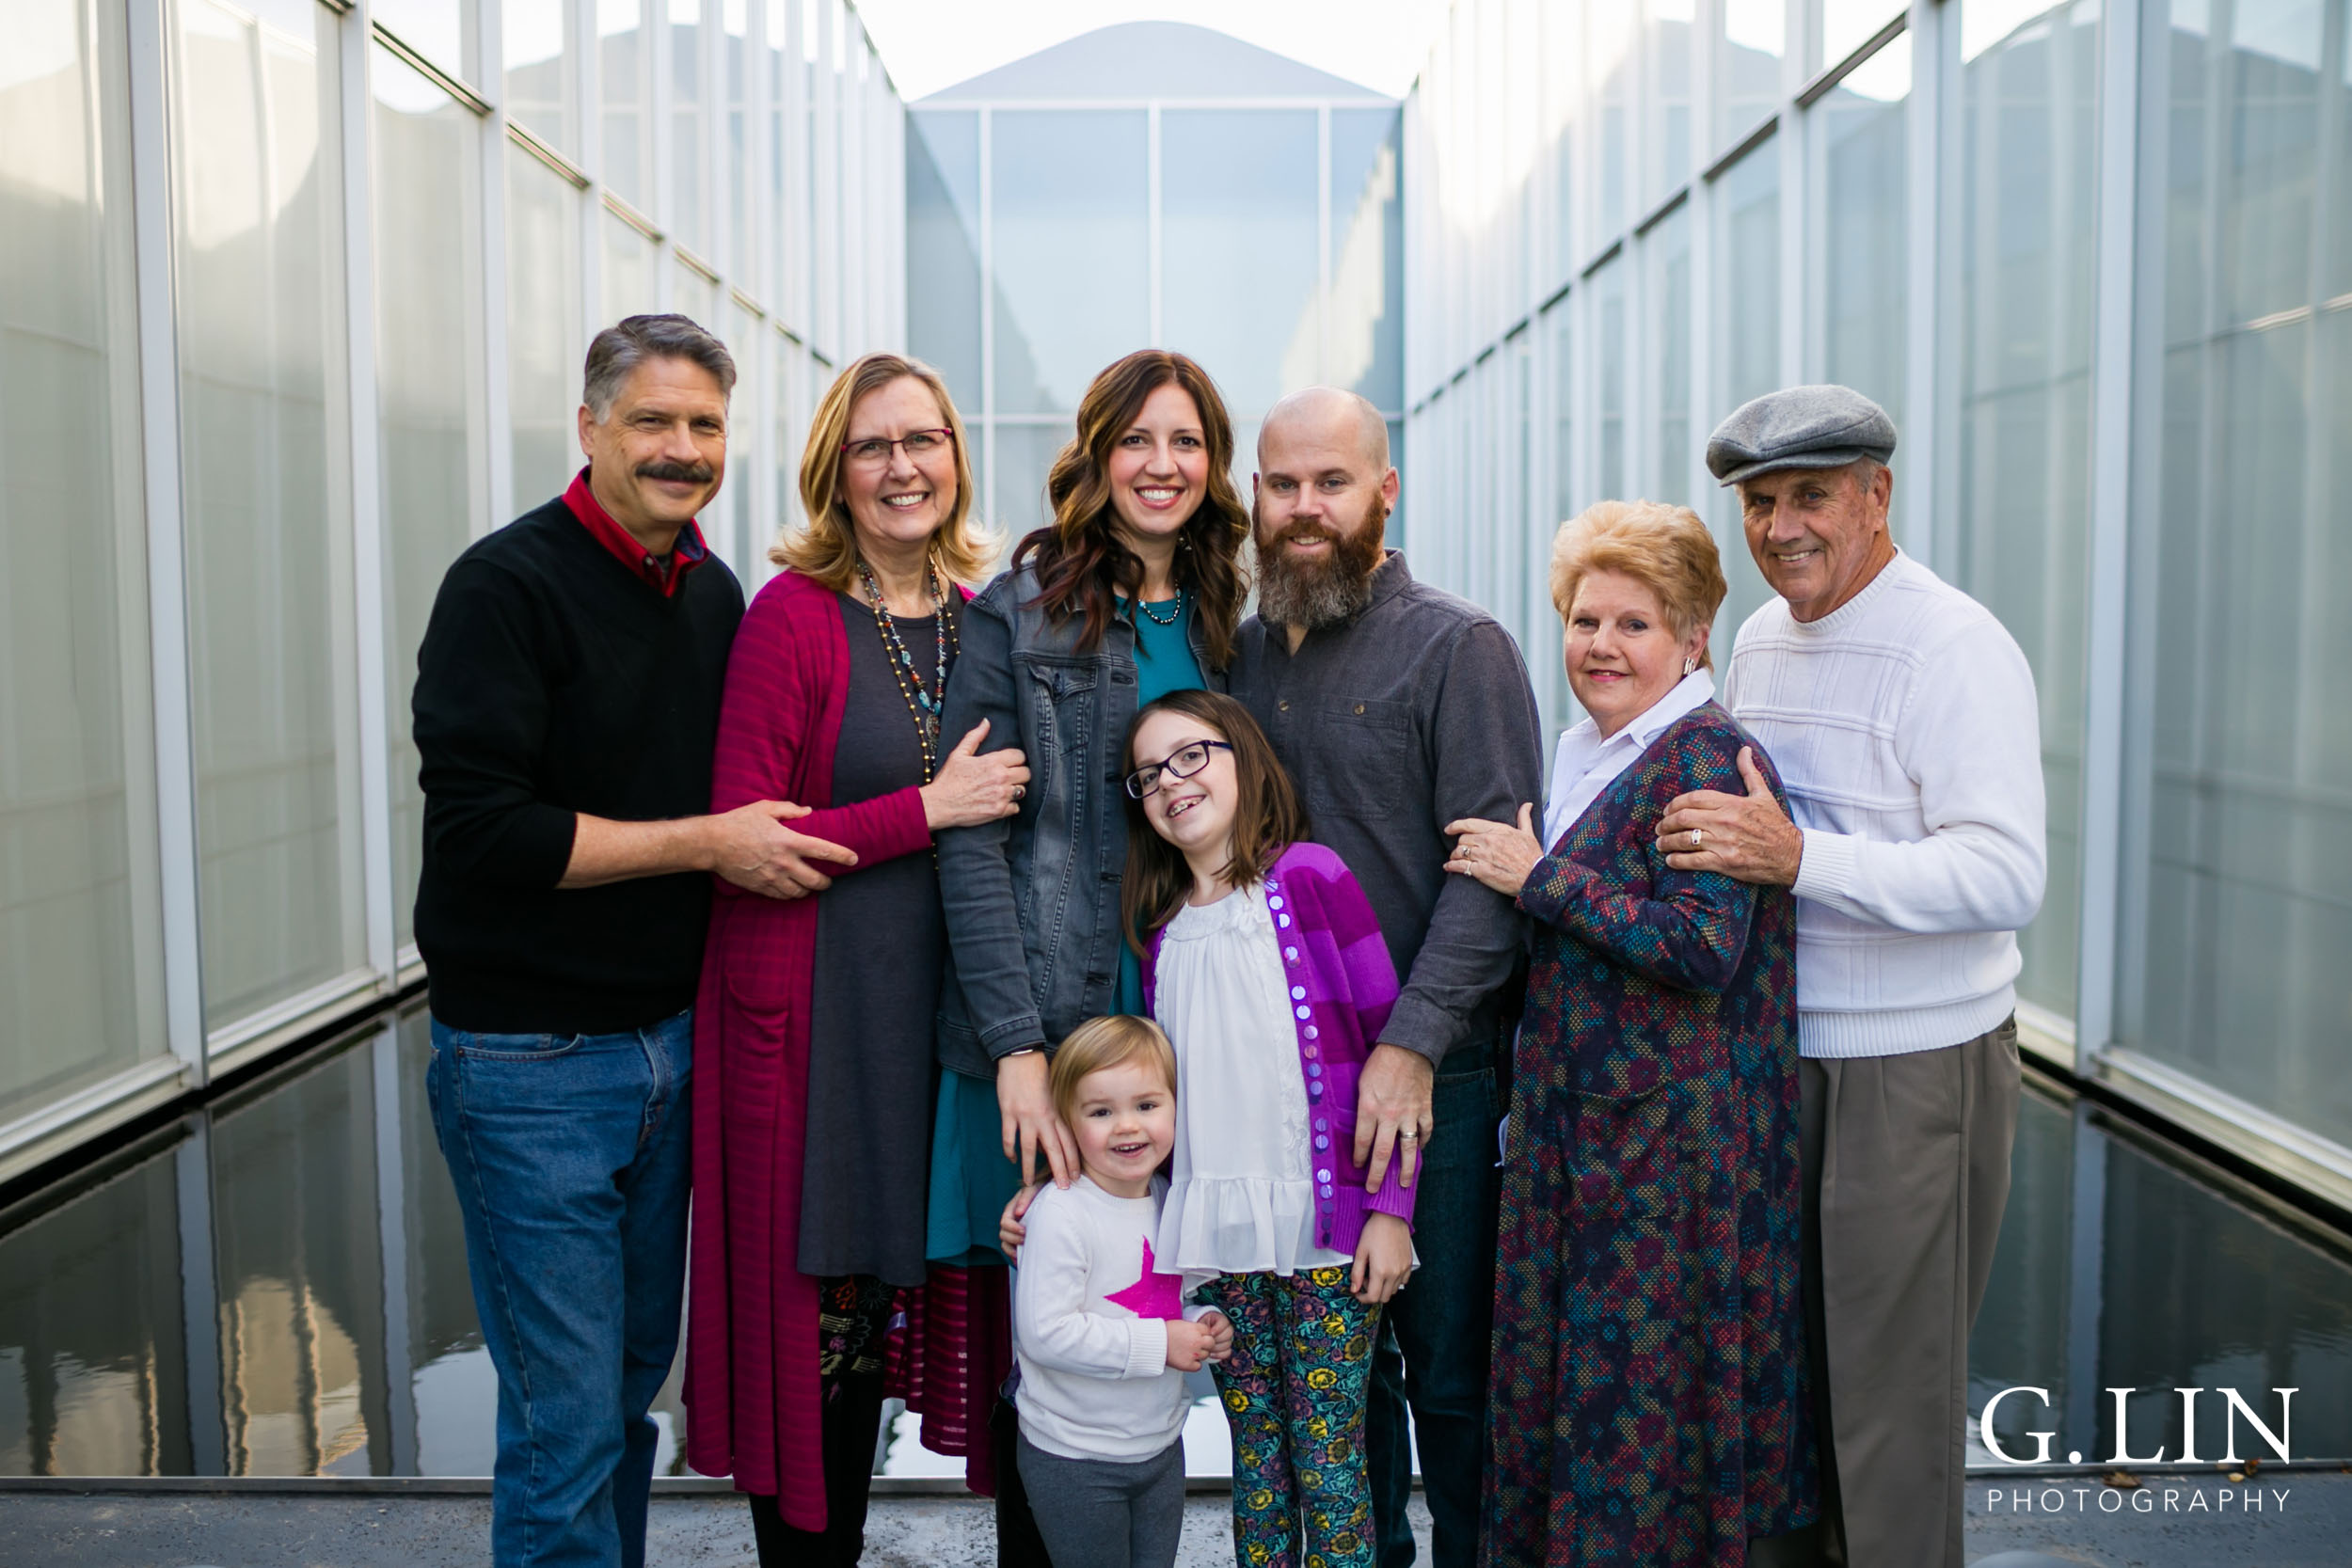 NC Museum of Art Family Photo | By G. Lin Photography | Raleigh Family Photographer